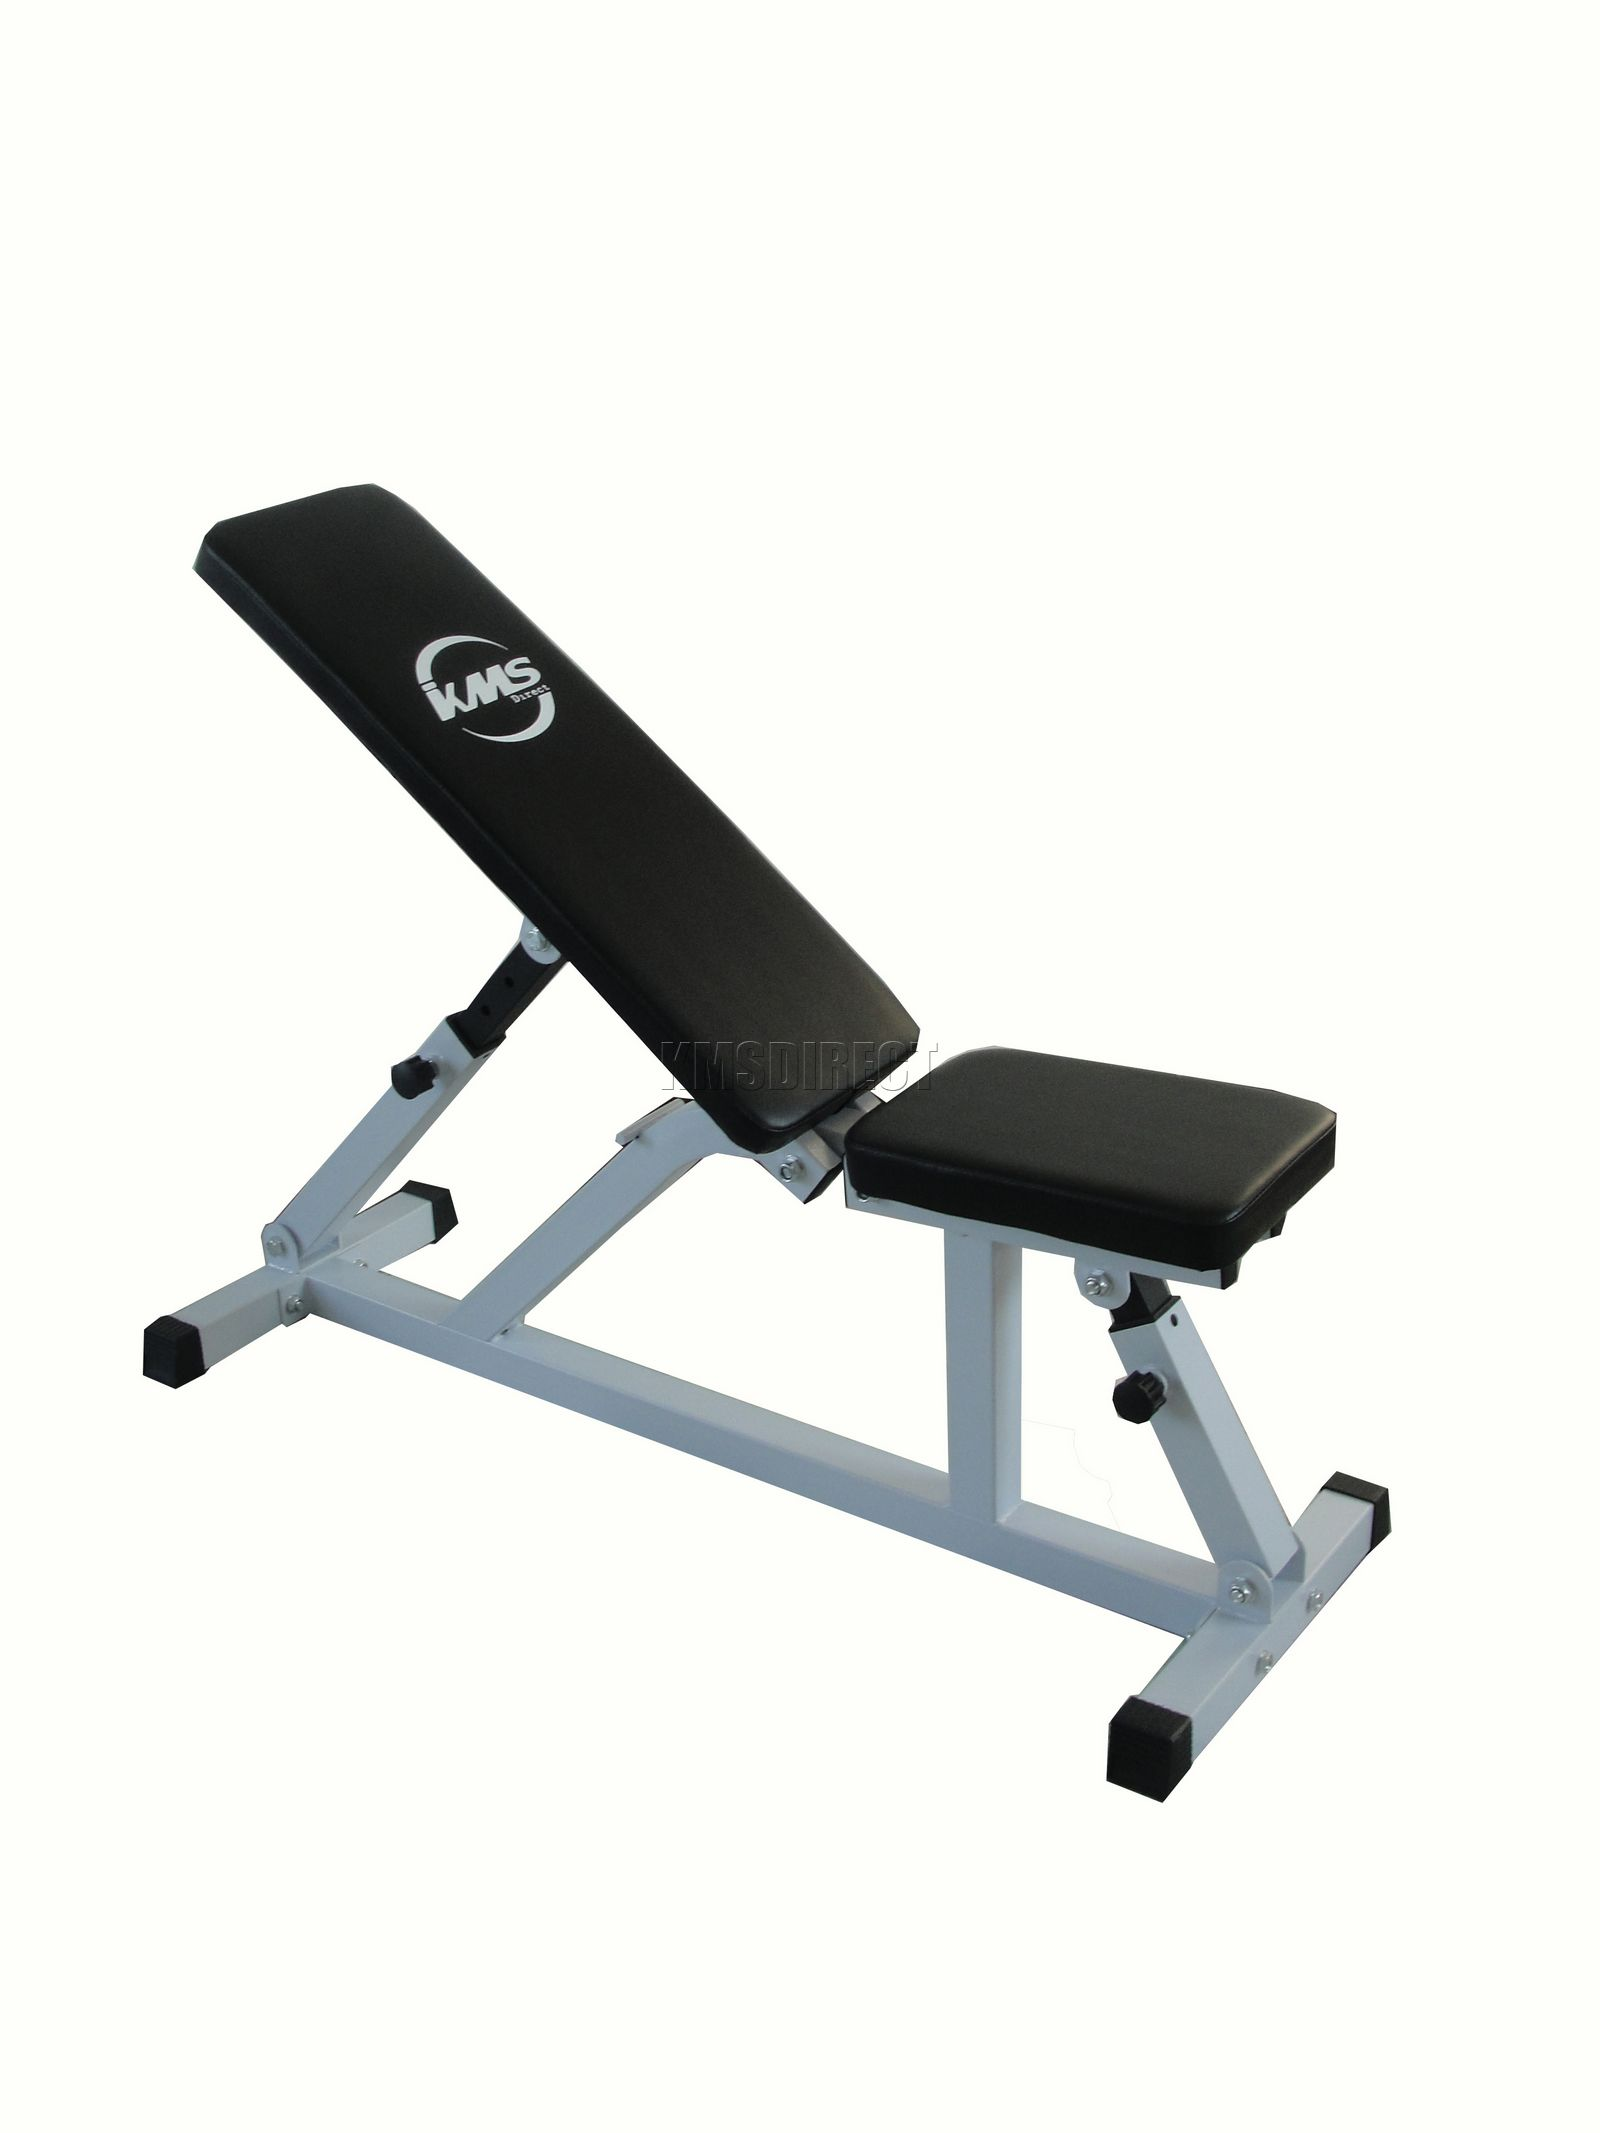 Heavy Duty Positions Adjustable Flat Incline Gym Utility Dumbell Weight Bench Ebay